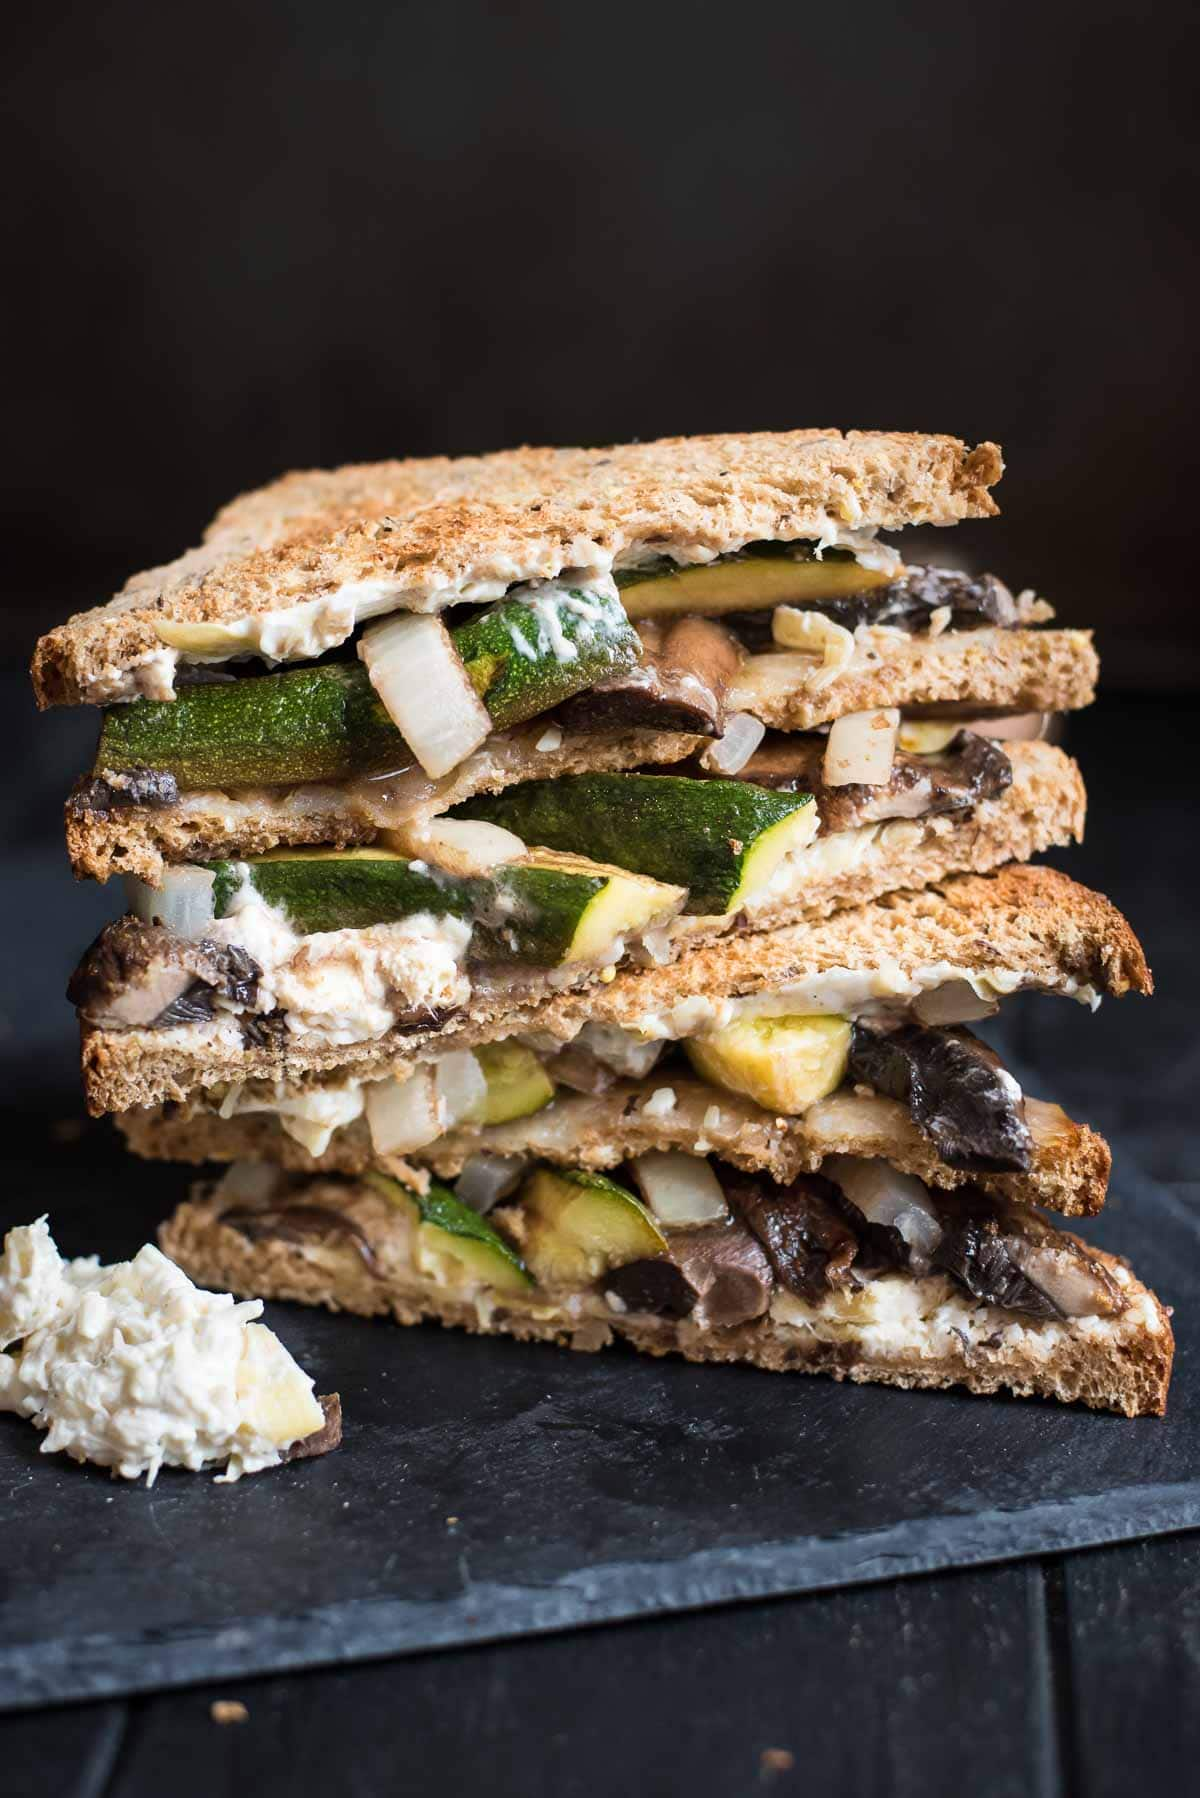 This is no ordinary veggie sandwich recipe! Loaded with roasted portabello mushrooms, zucchini, onion, and a creamy spread, this sandwich will satisfy the heartiest of appetites!